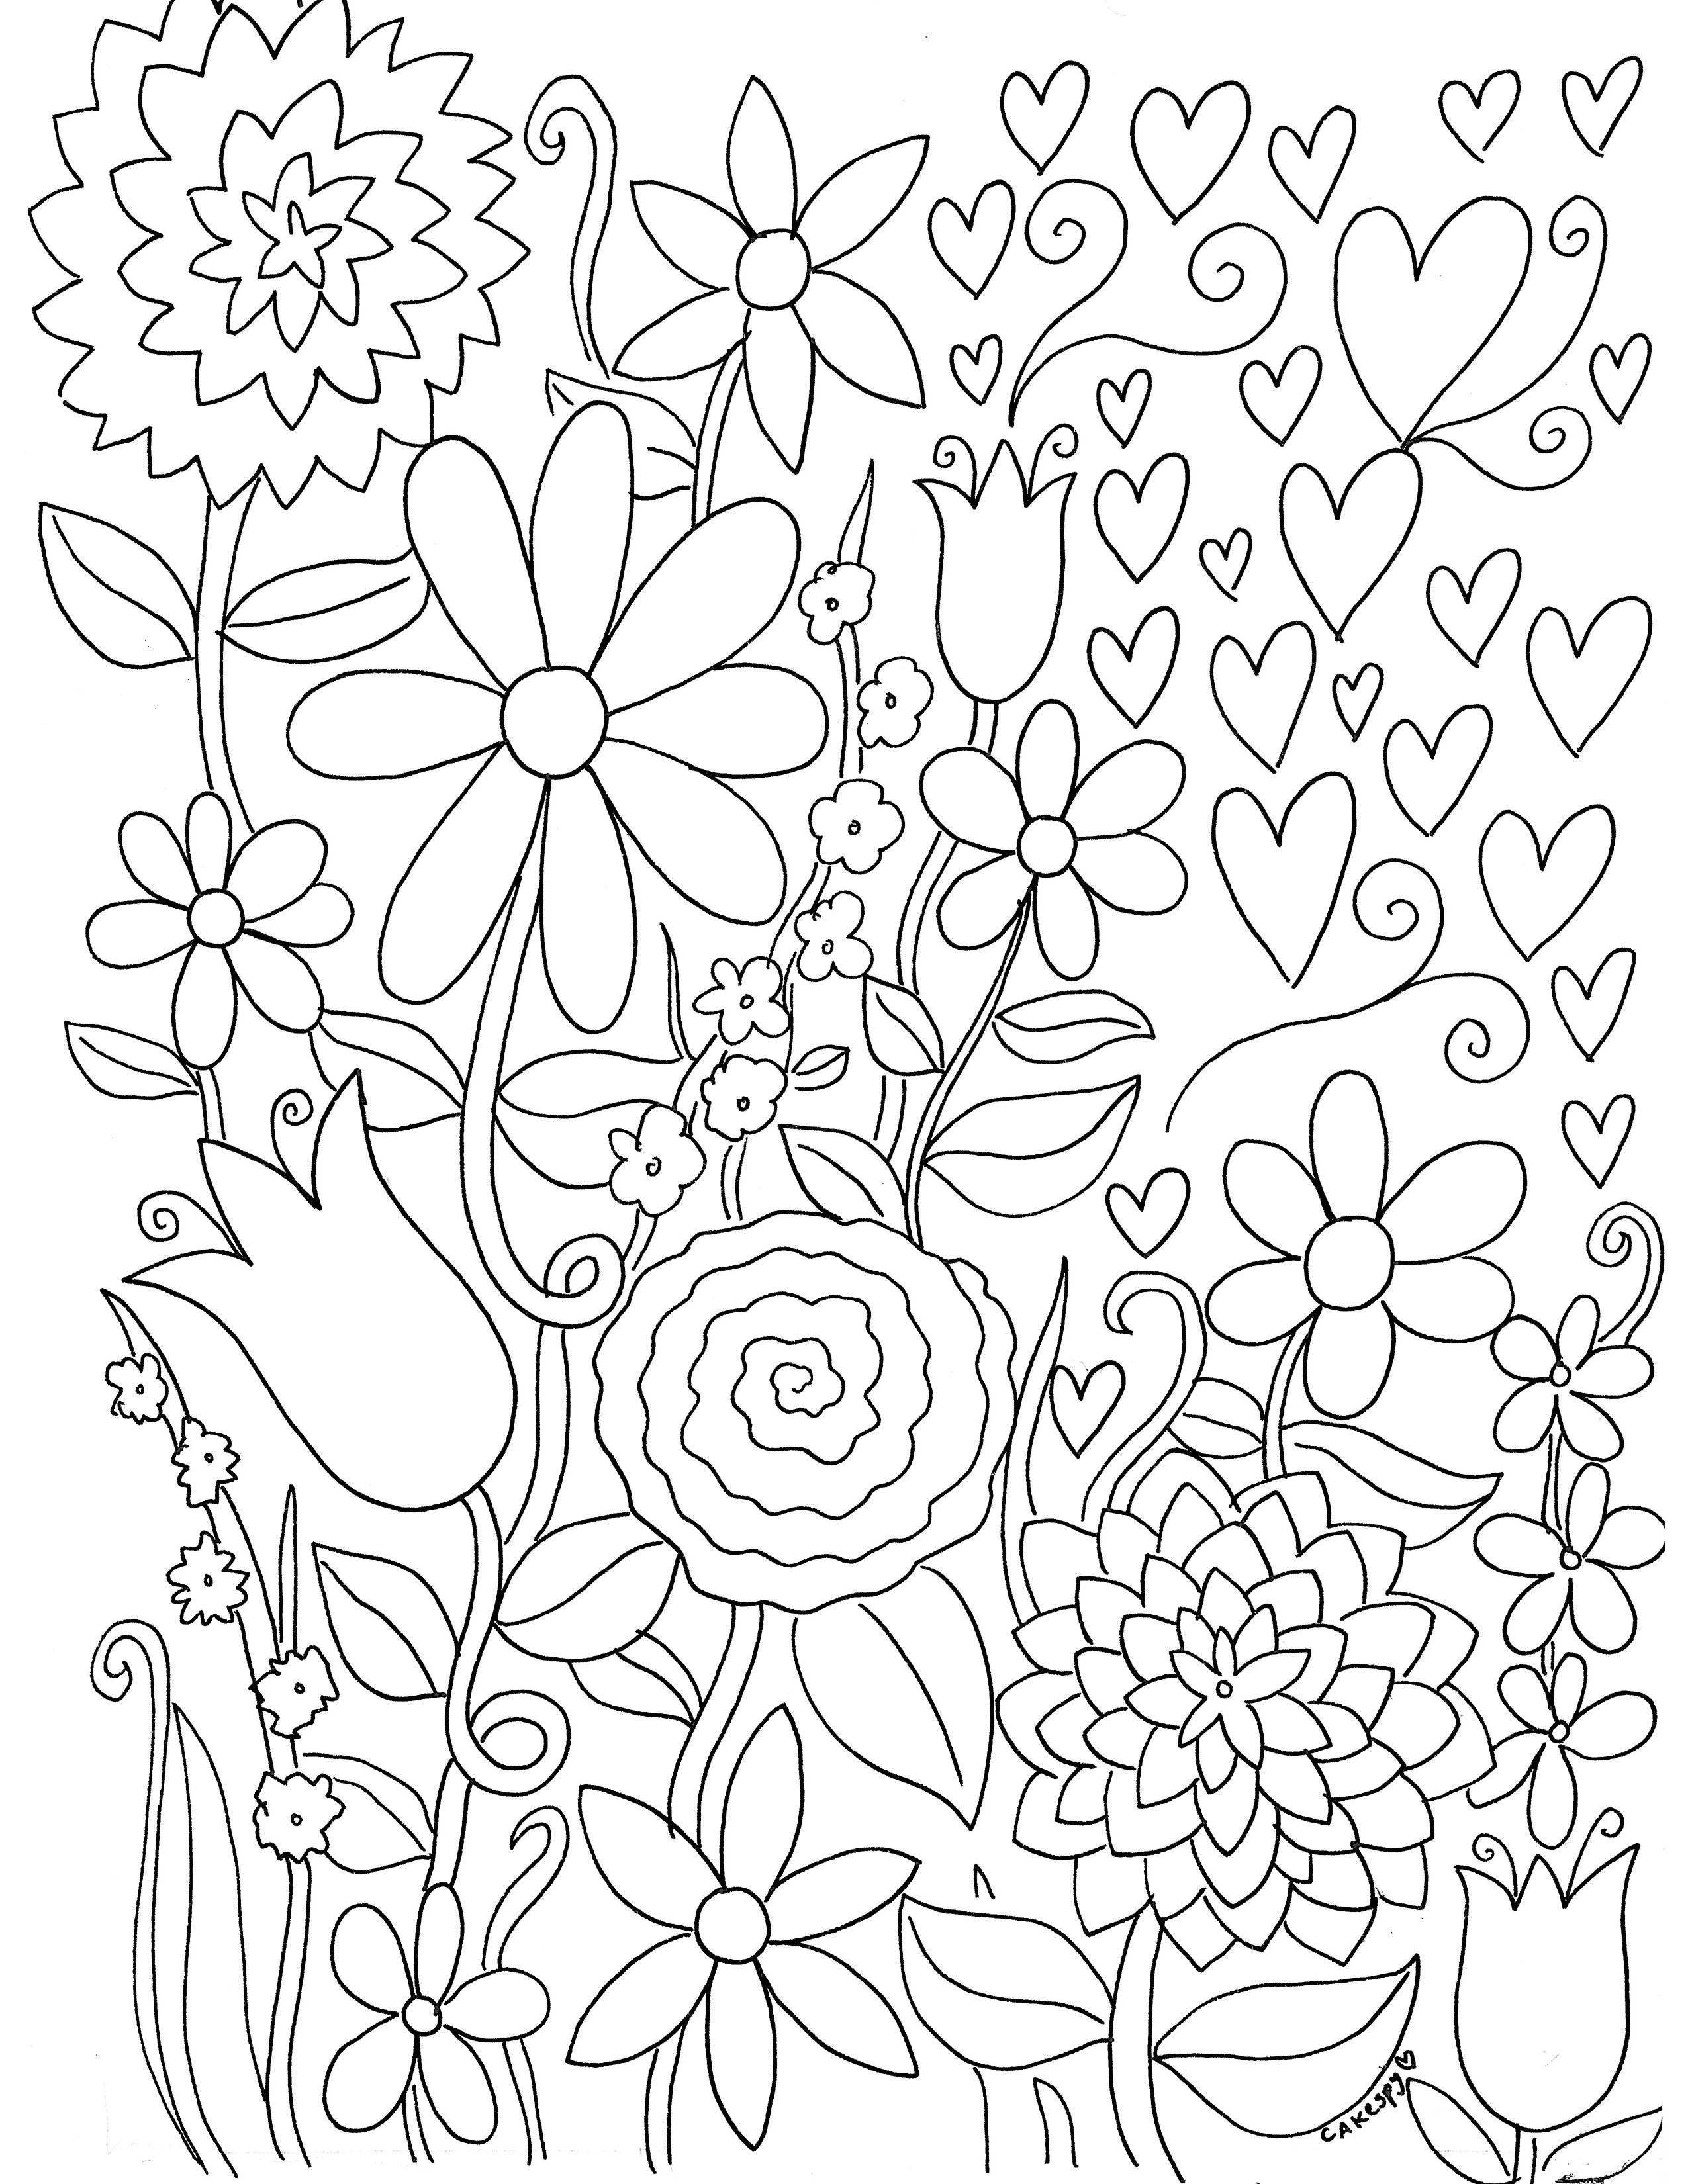 Free Paintnumbers For Adults Downloadable | *printable Art - Free Printable Flower Coloring Pages For Adults